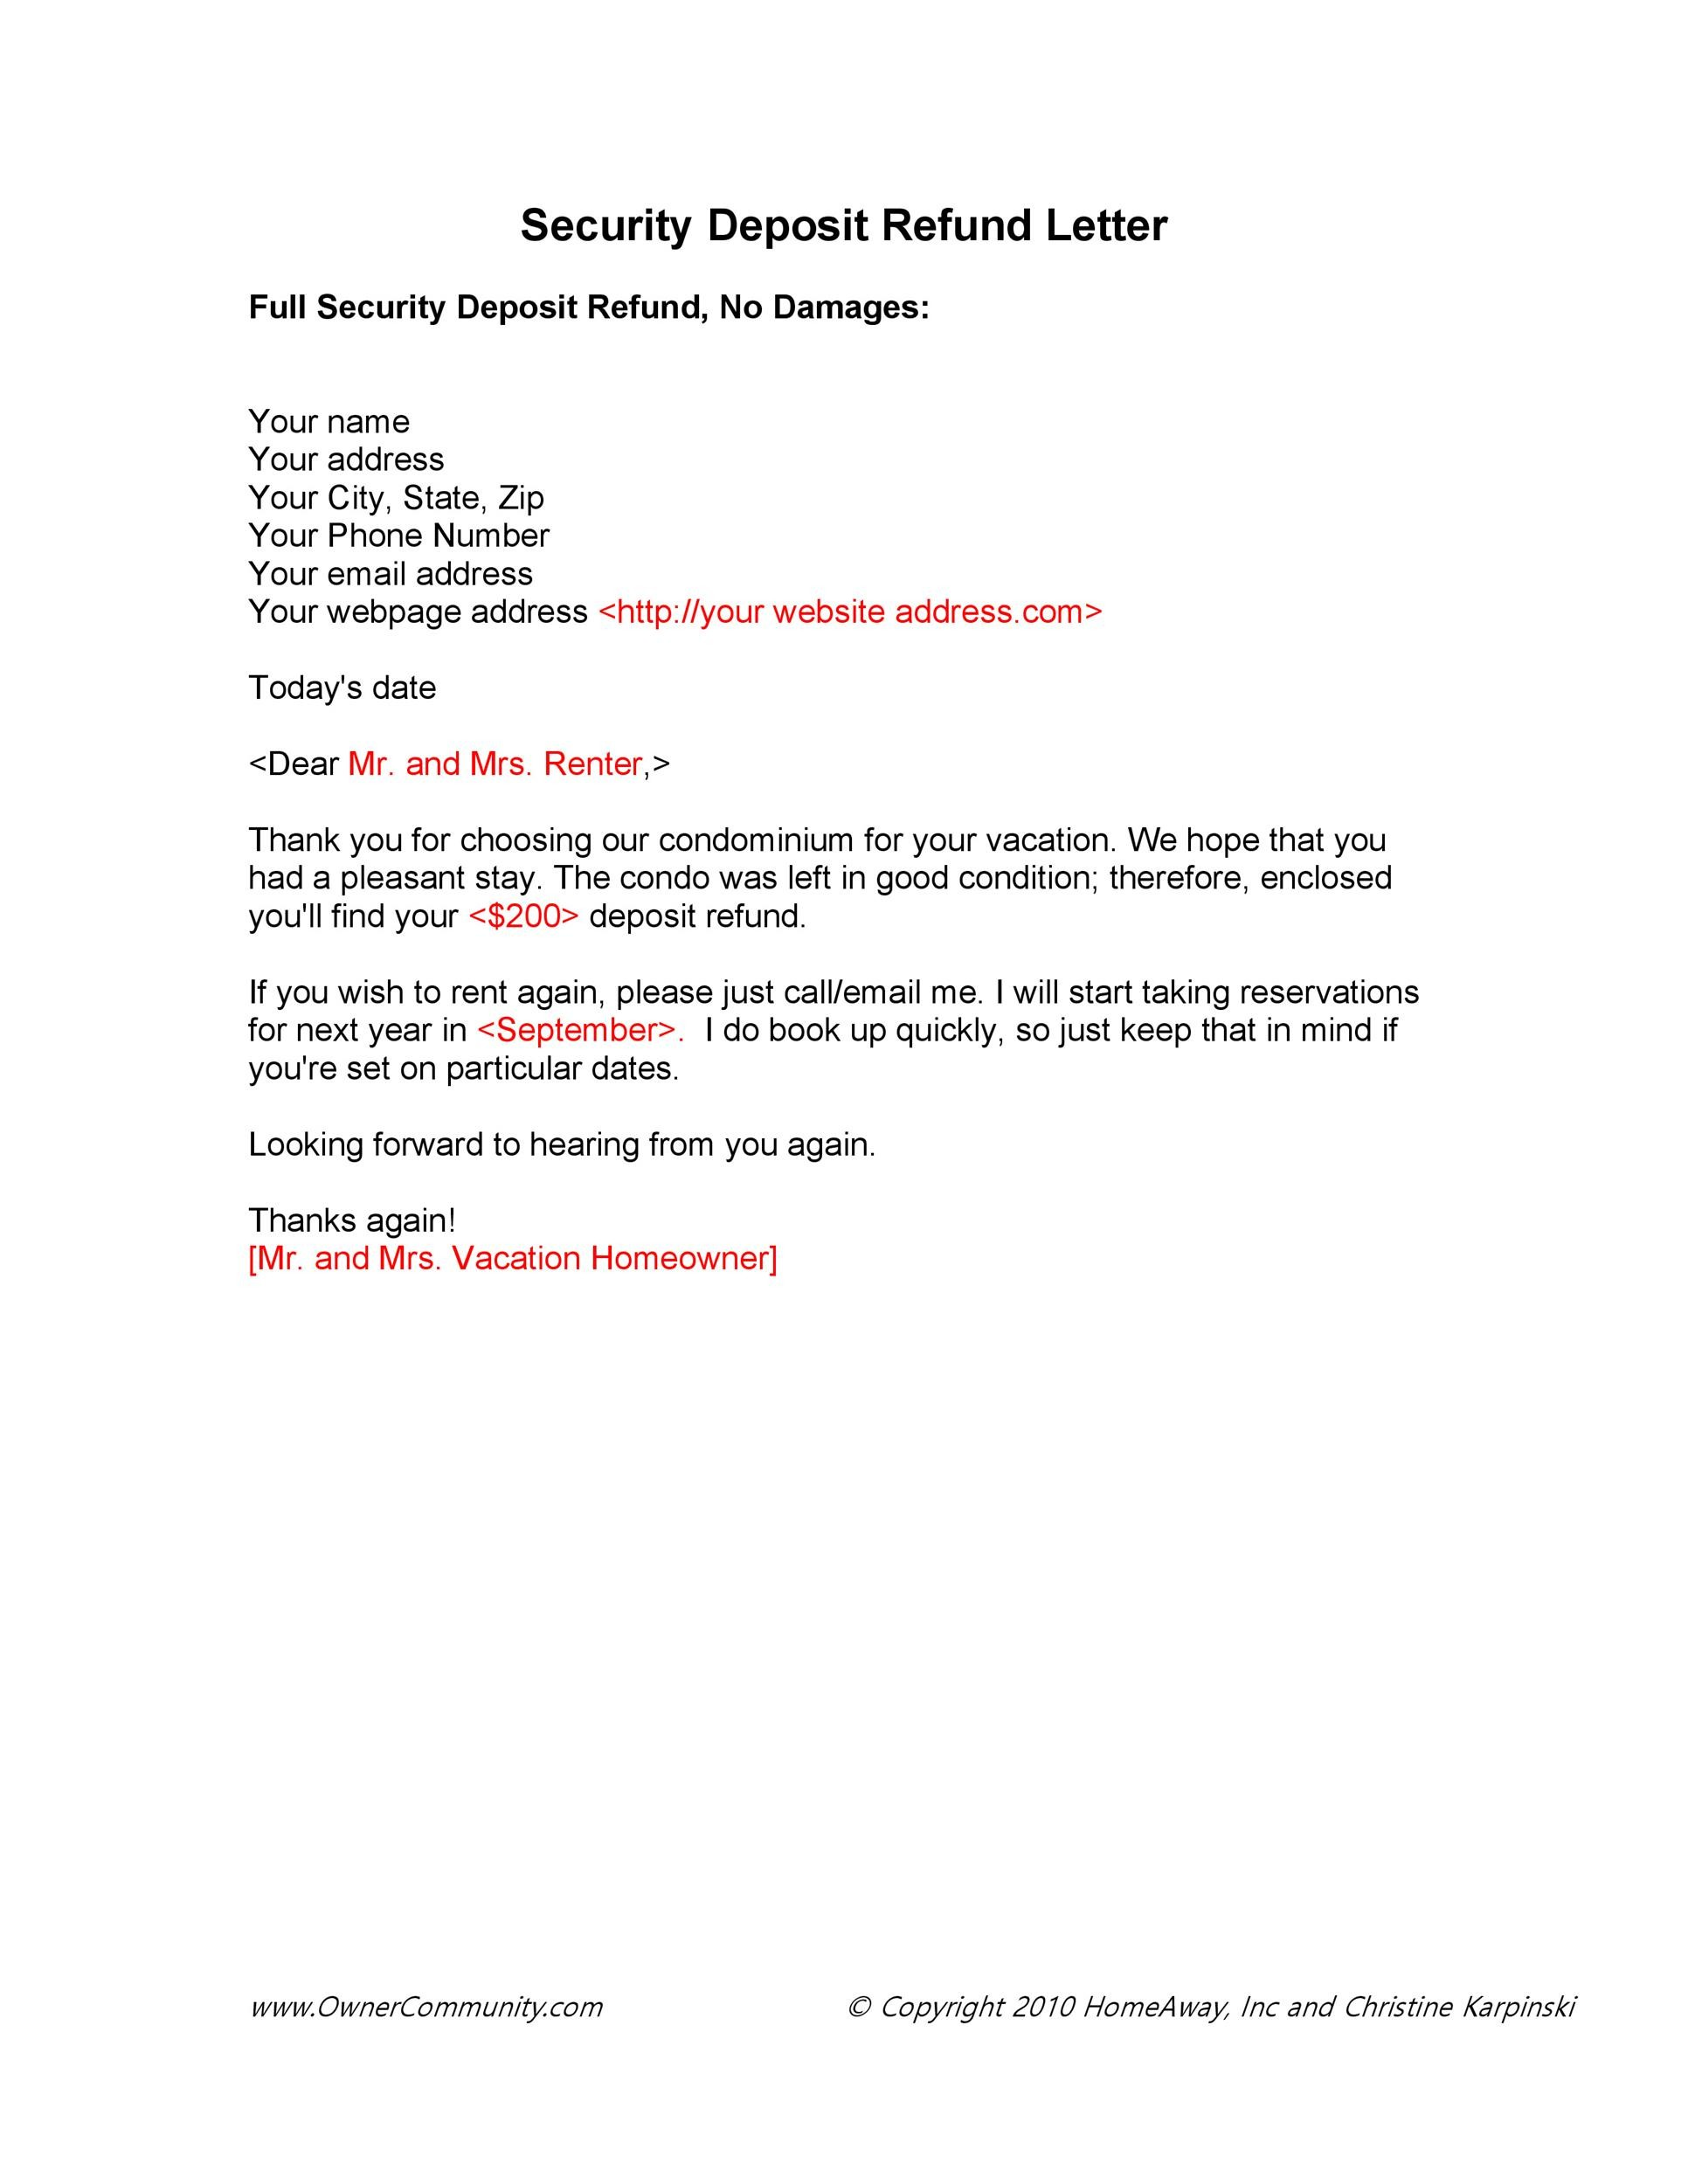 Free security deposit return letter 01